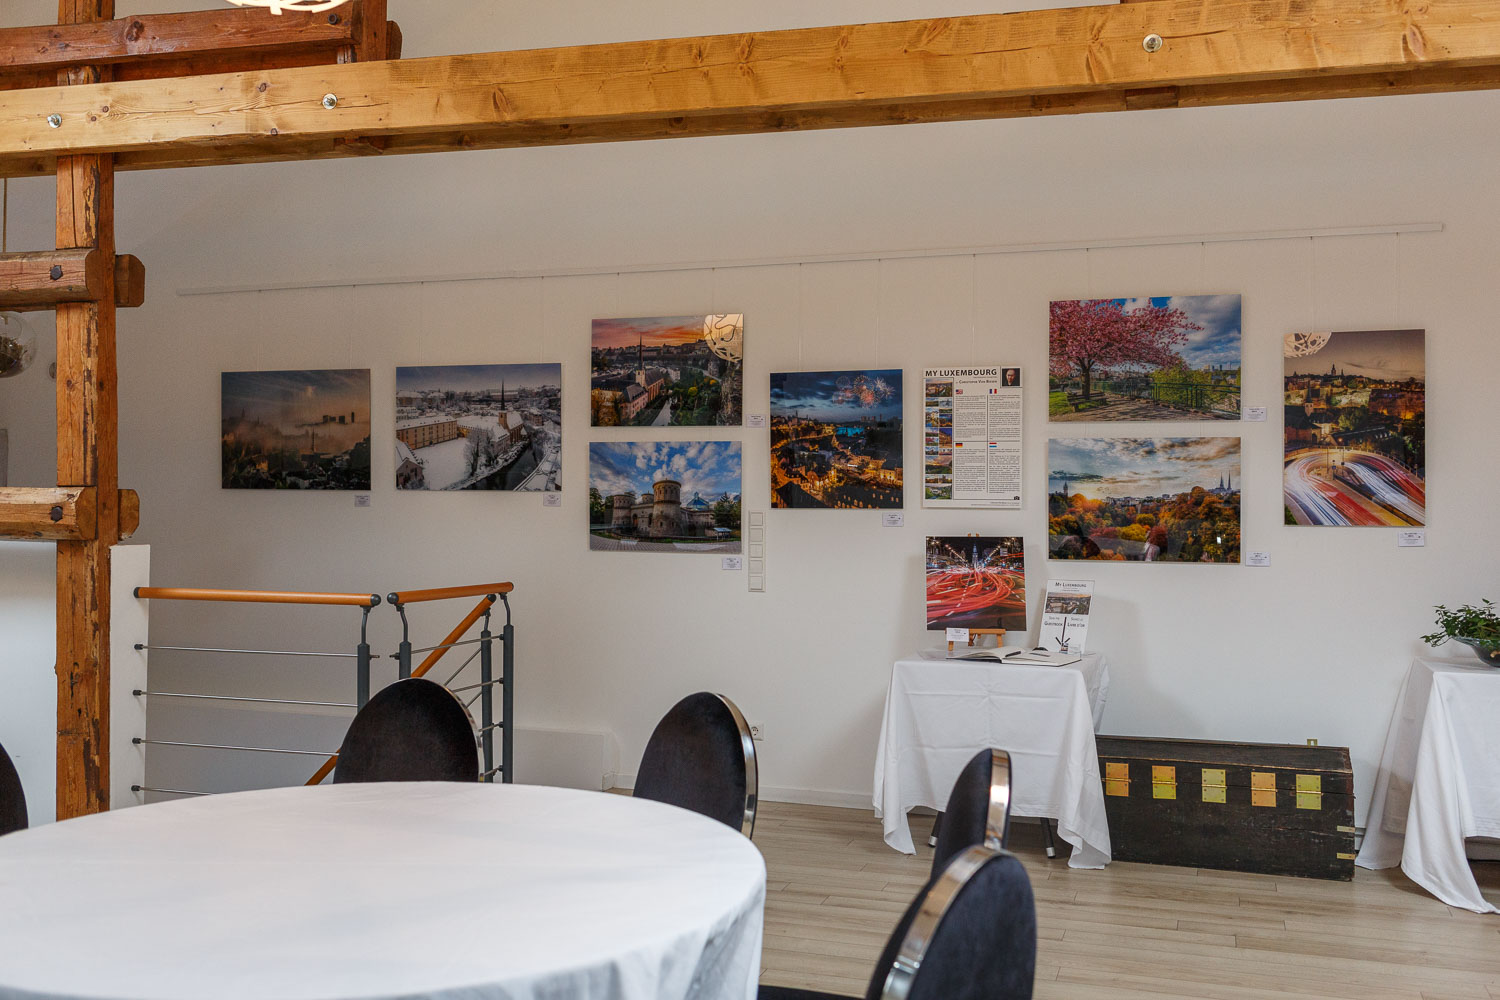 Photography exhibition at the Yves Radelet in Drauffelt in the North of Luxembourg - Photography by Christophe Van Biesen - Landscape and Travel Photographer from Luxembourg